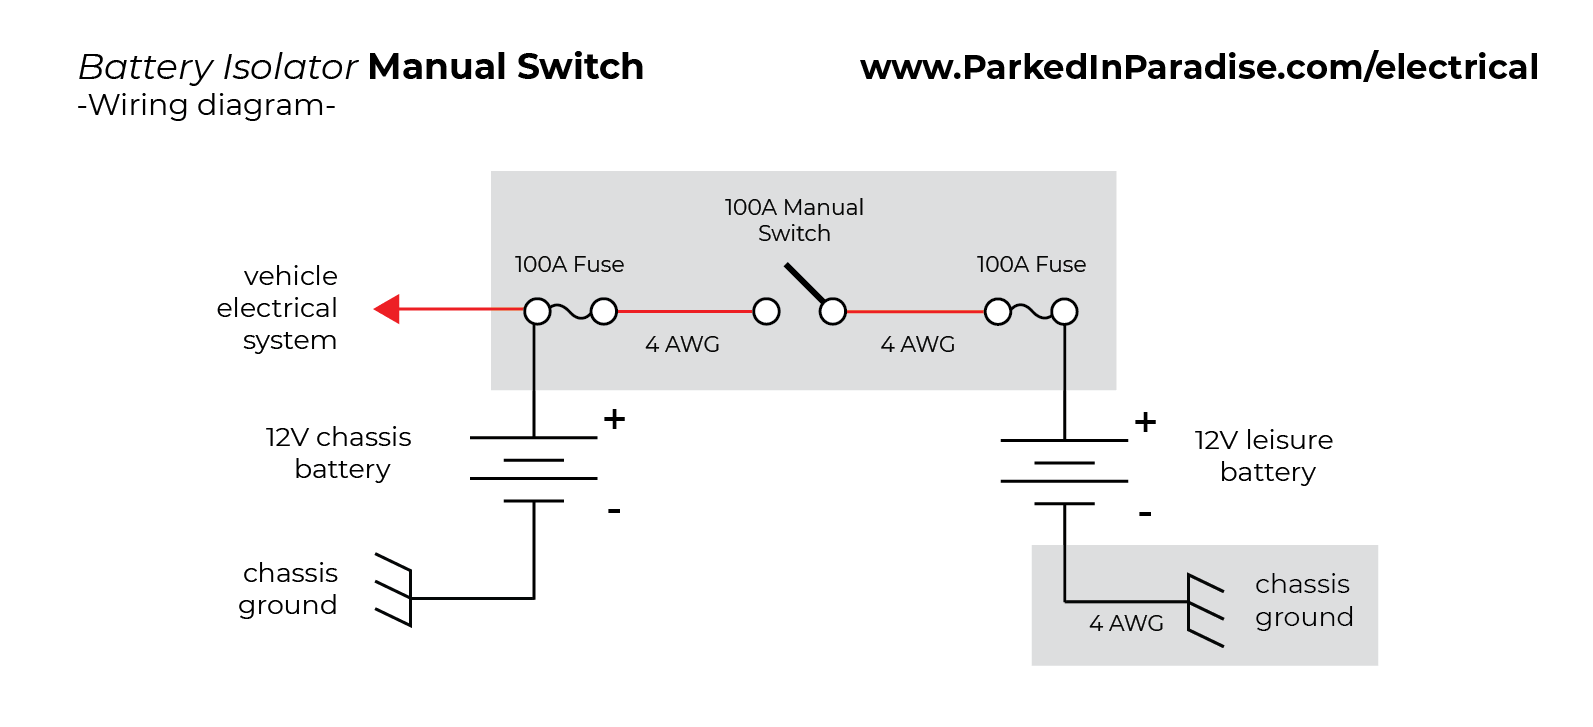 typical battery isolator wiring diagram